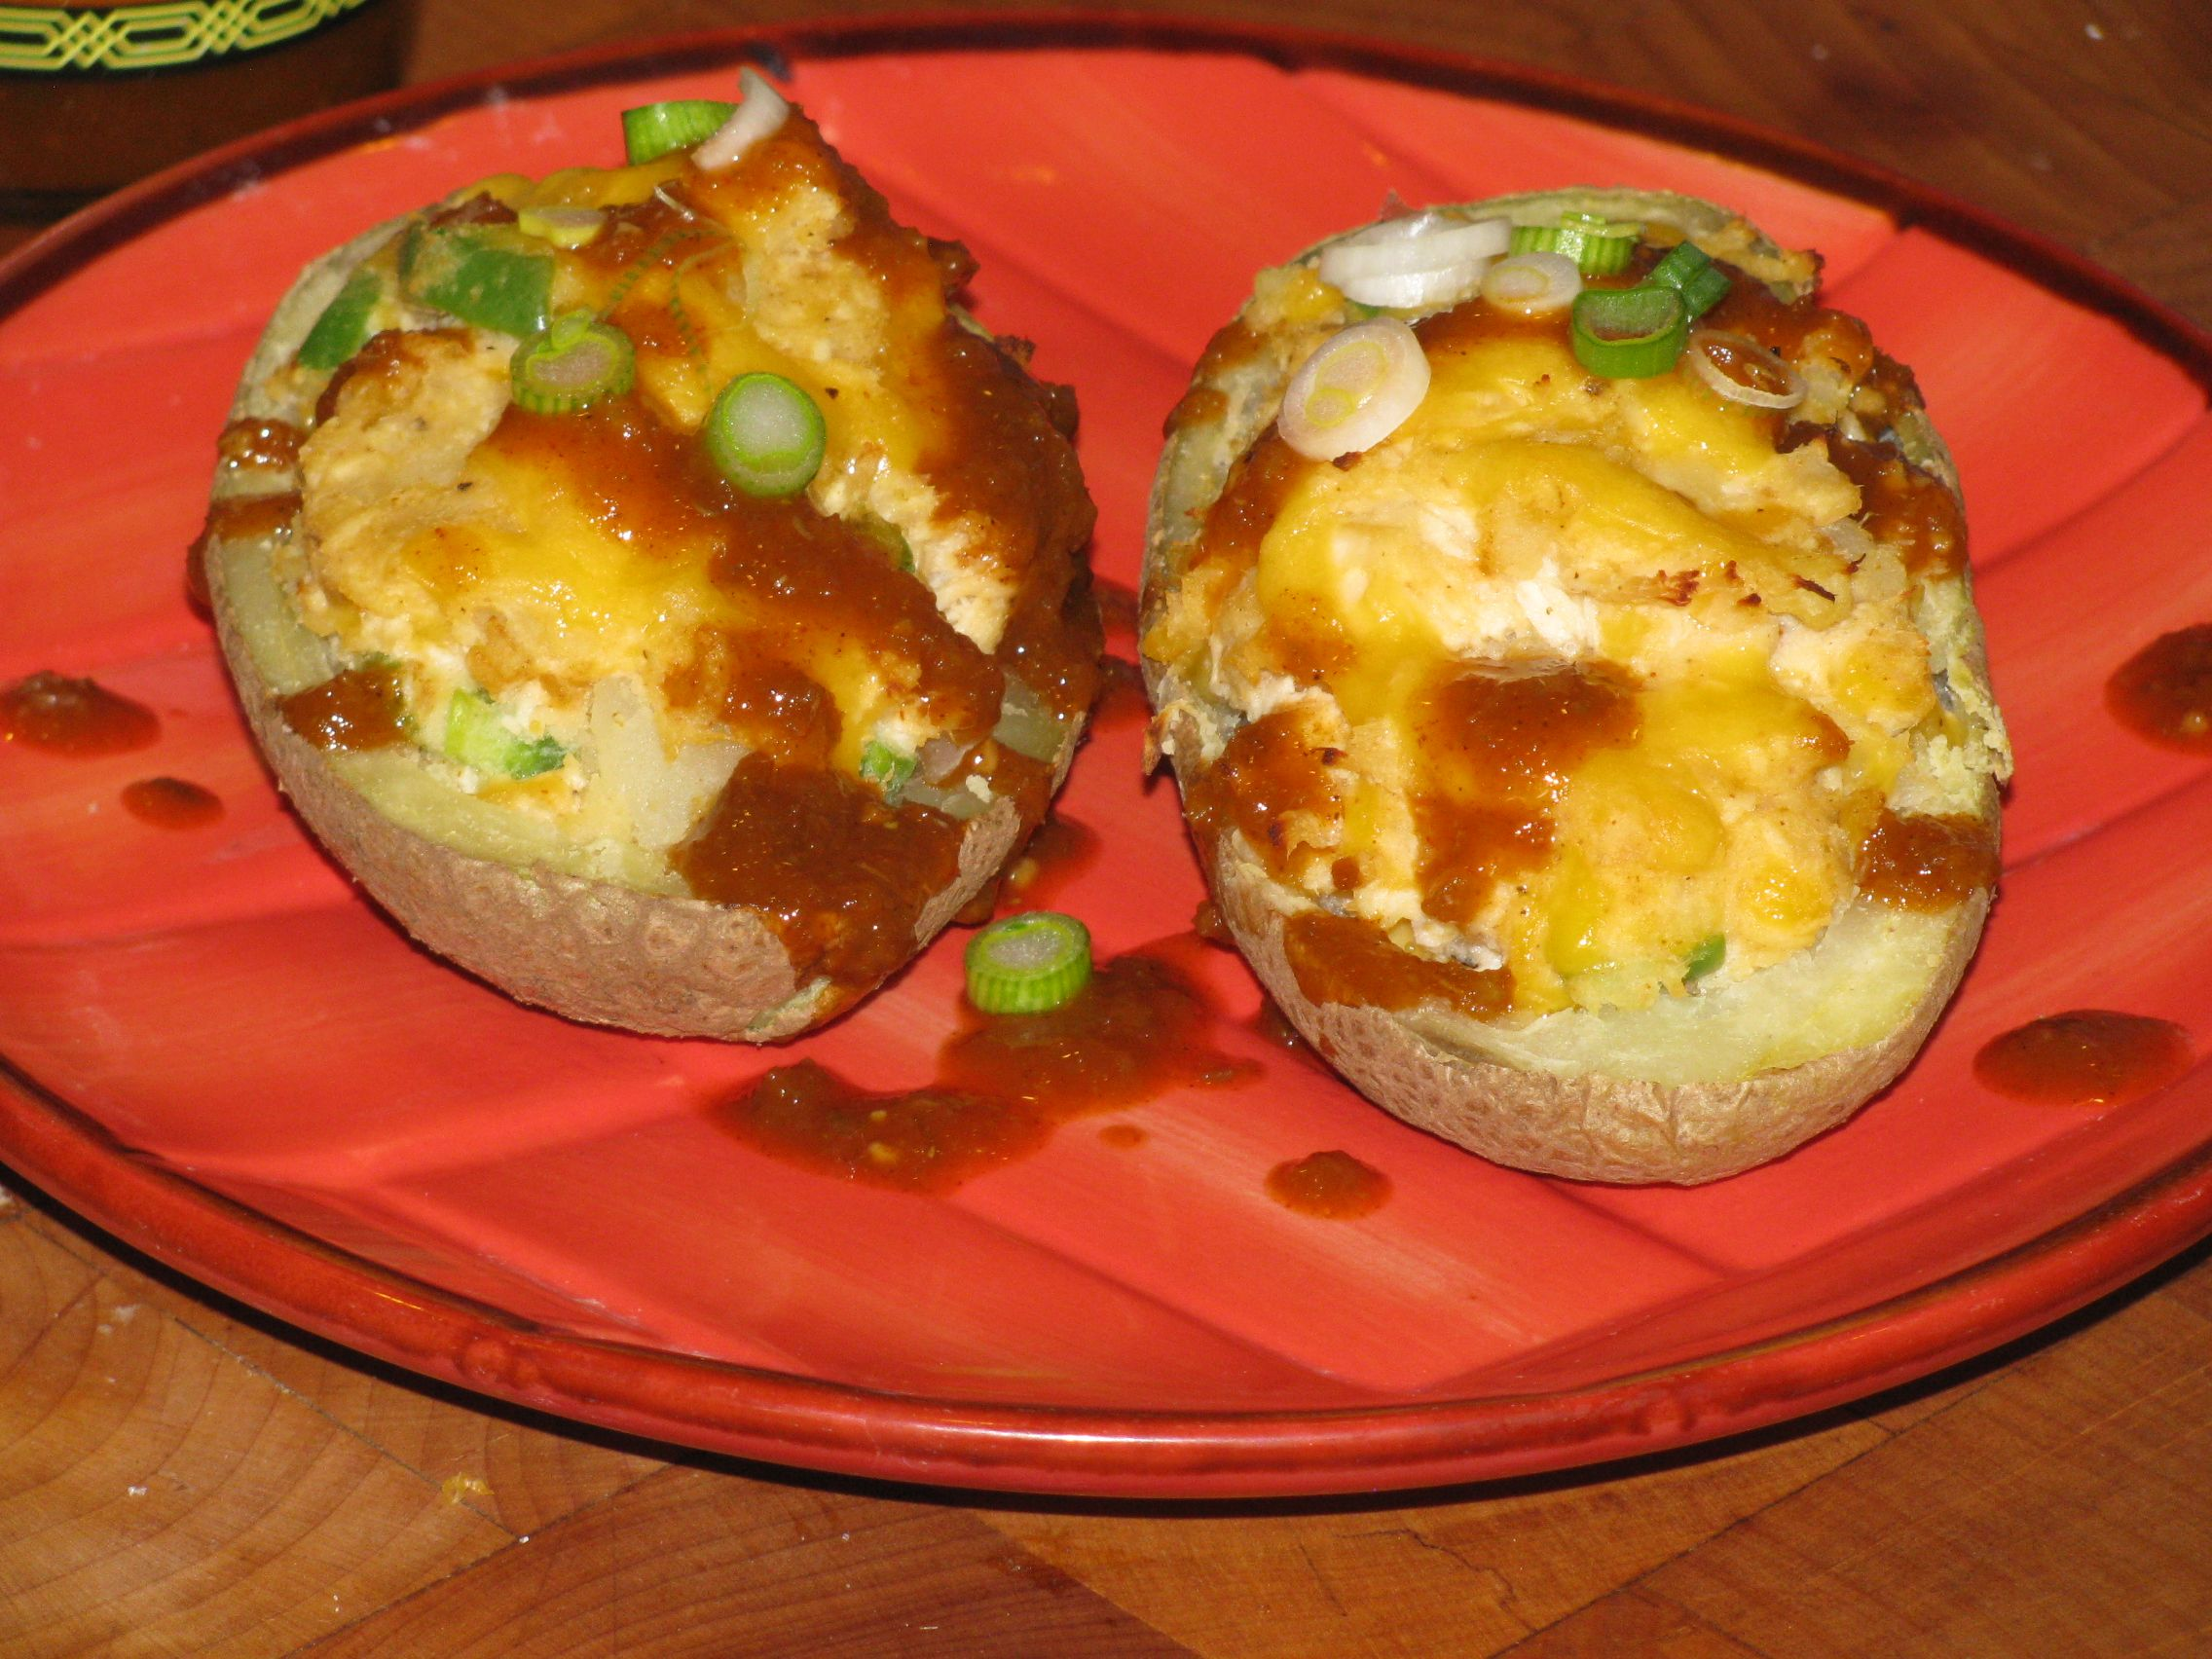 Double Baked Cheesy Potatoes- 143 calories